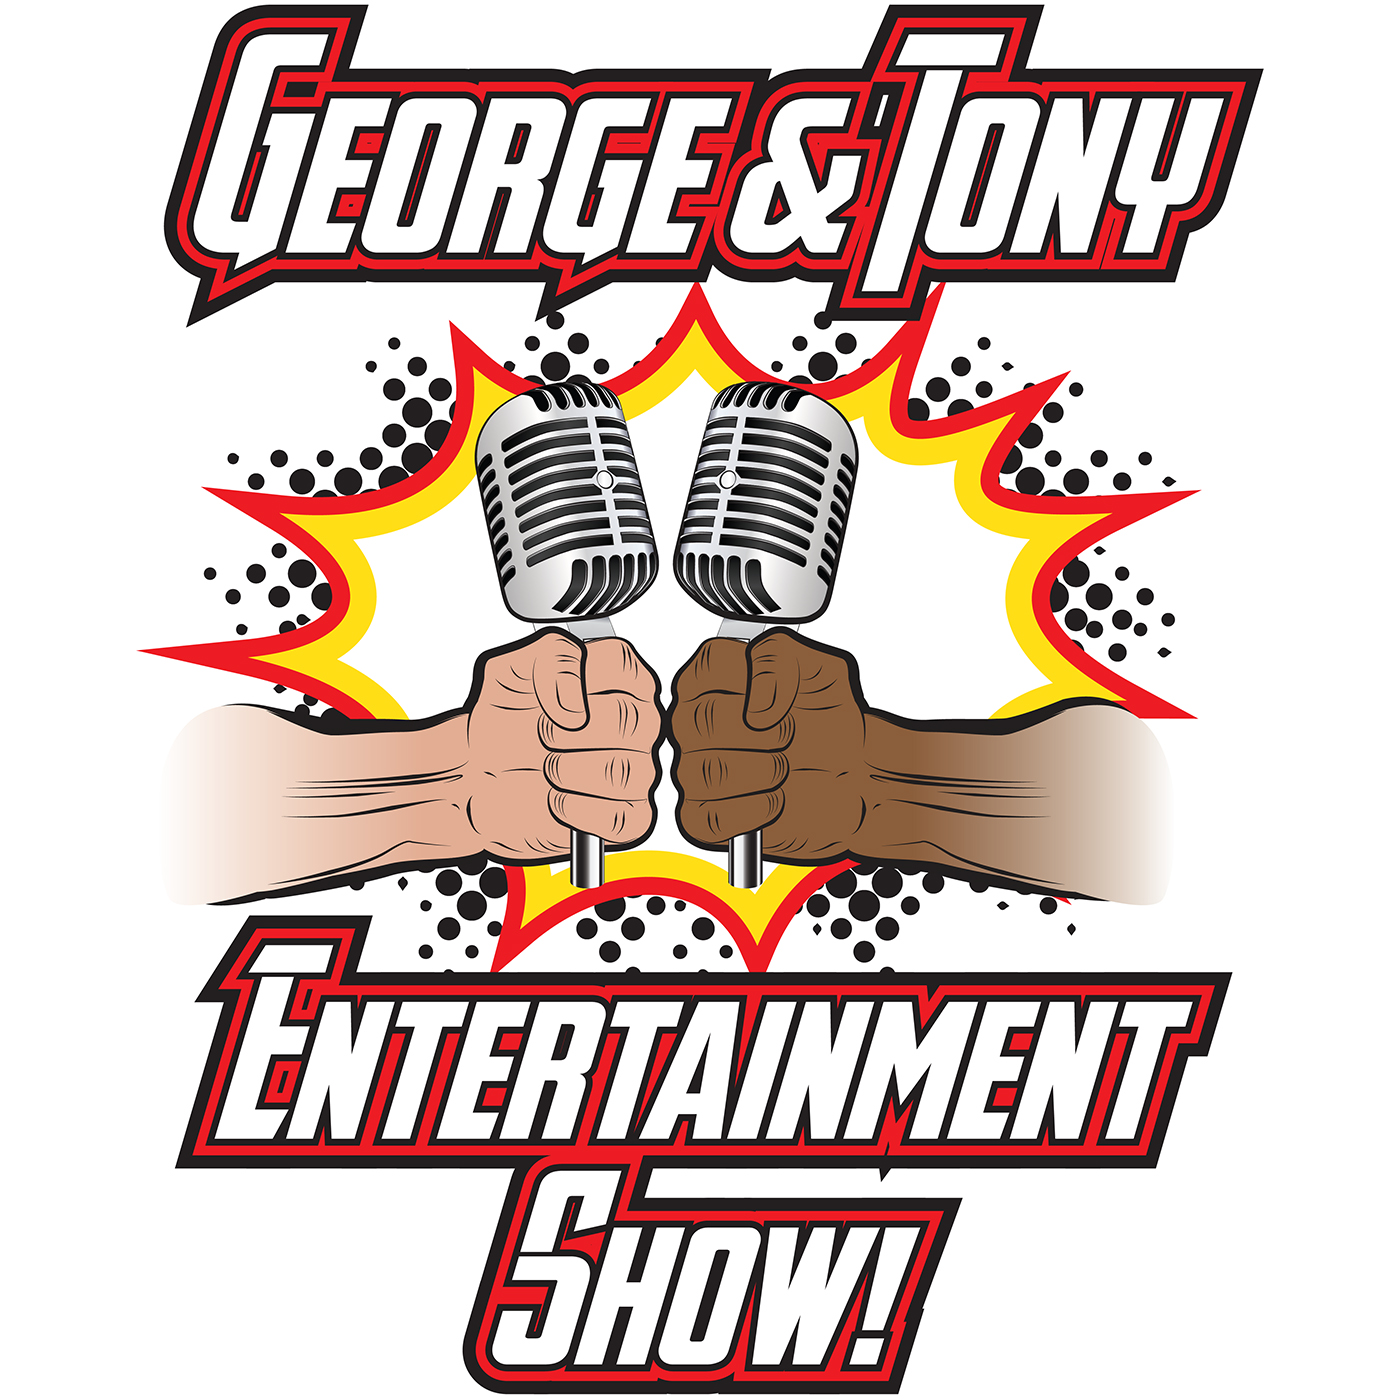 George and Tony Entertainment Show #98